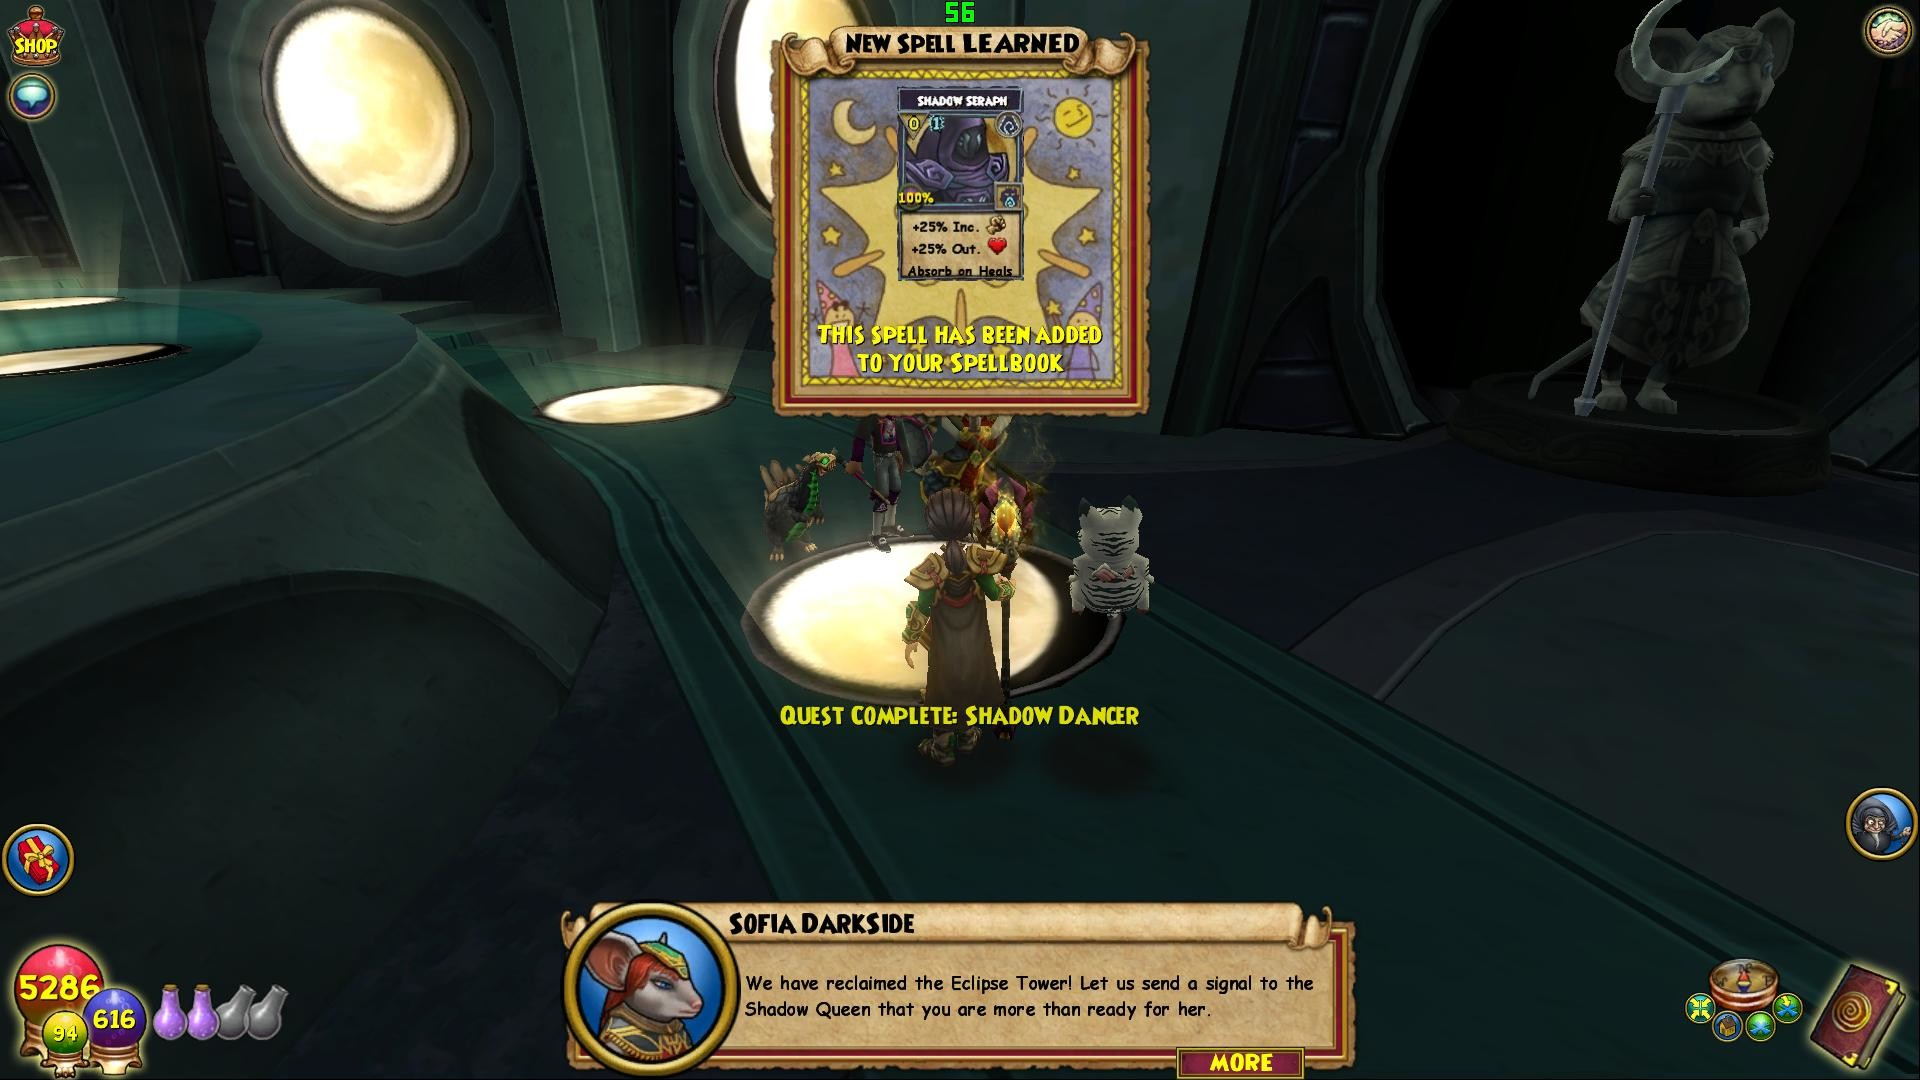 Res: 1920x1080, Wizard101 - My First Shadow Spell!